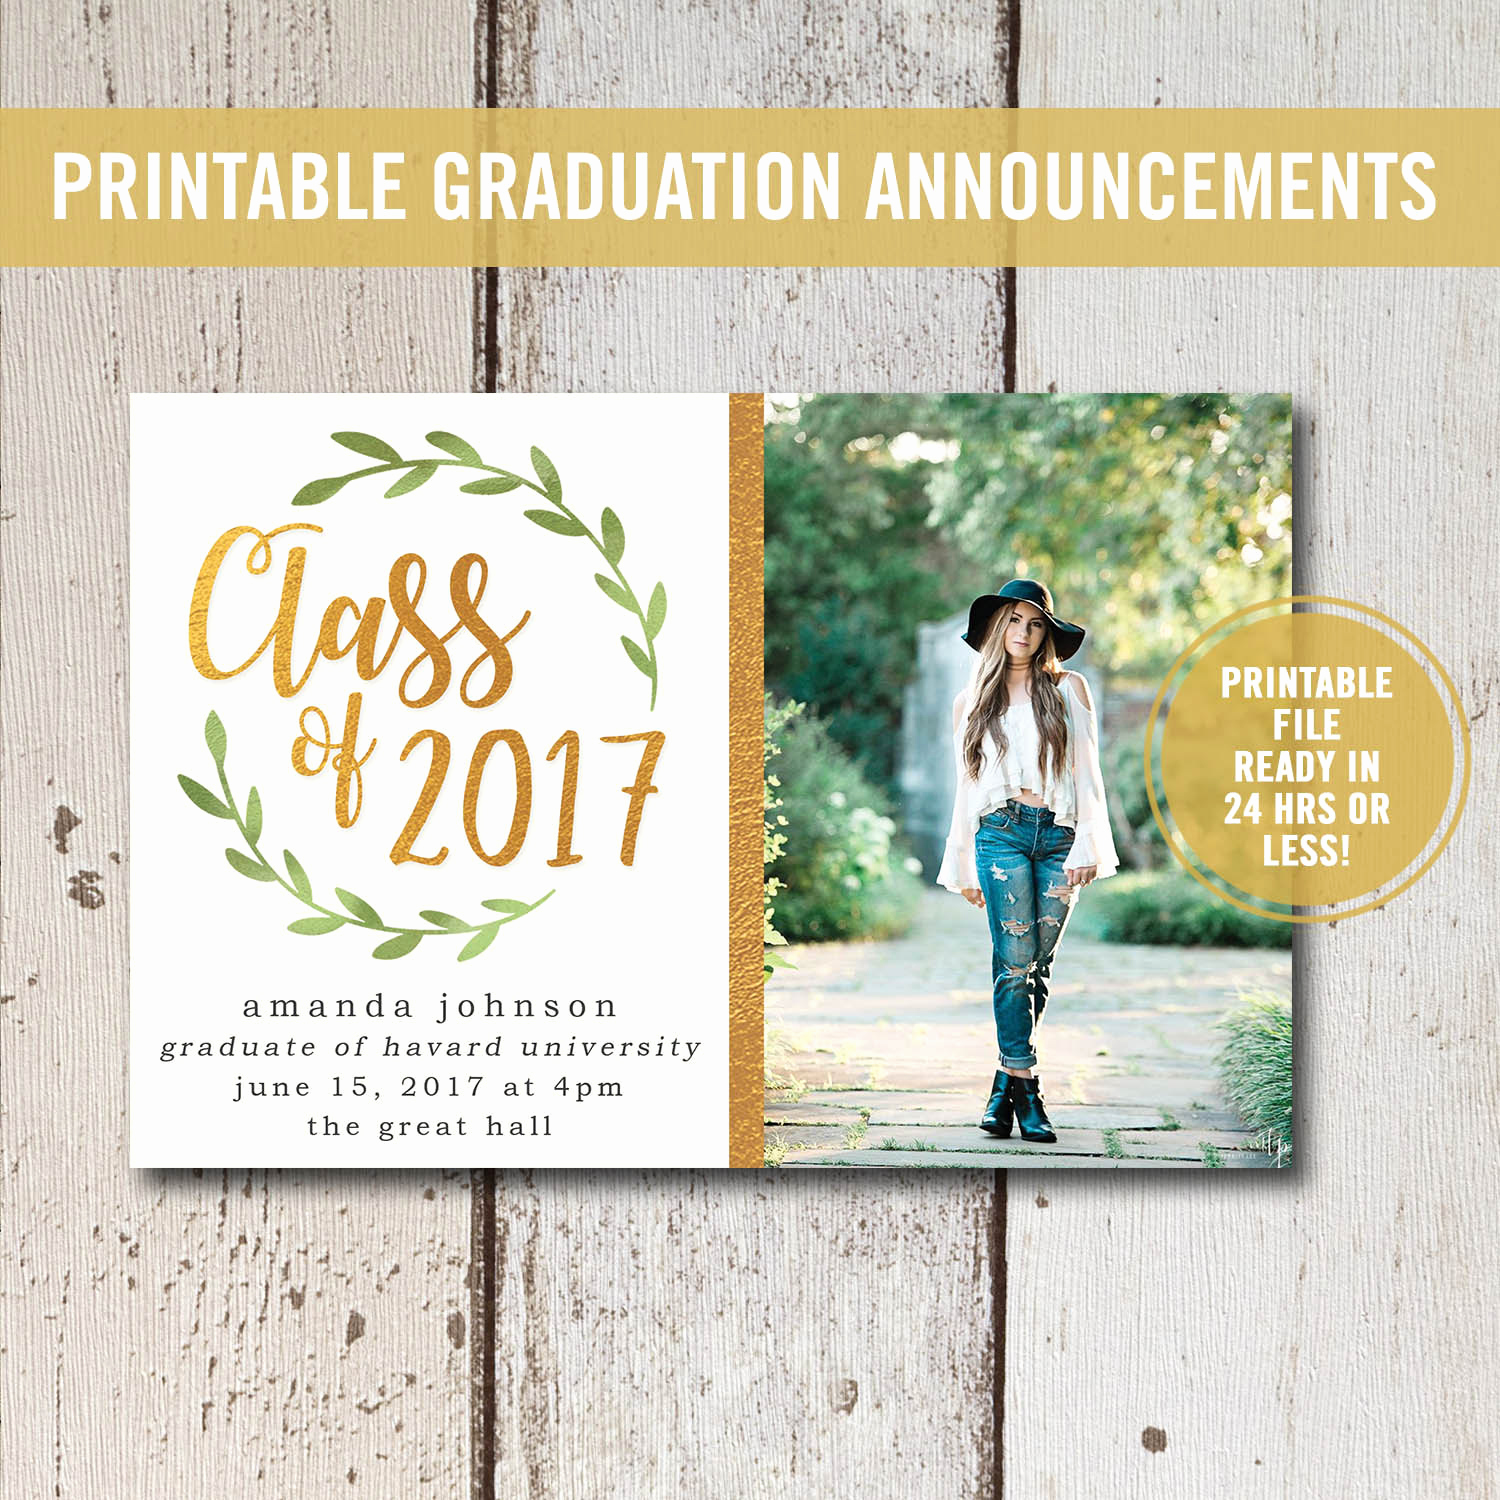 Graduation Invitation Announcement Wording Lovely College Graduation Invitation Printable High School